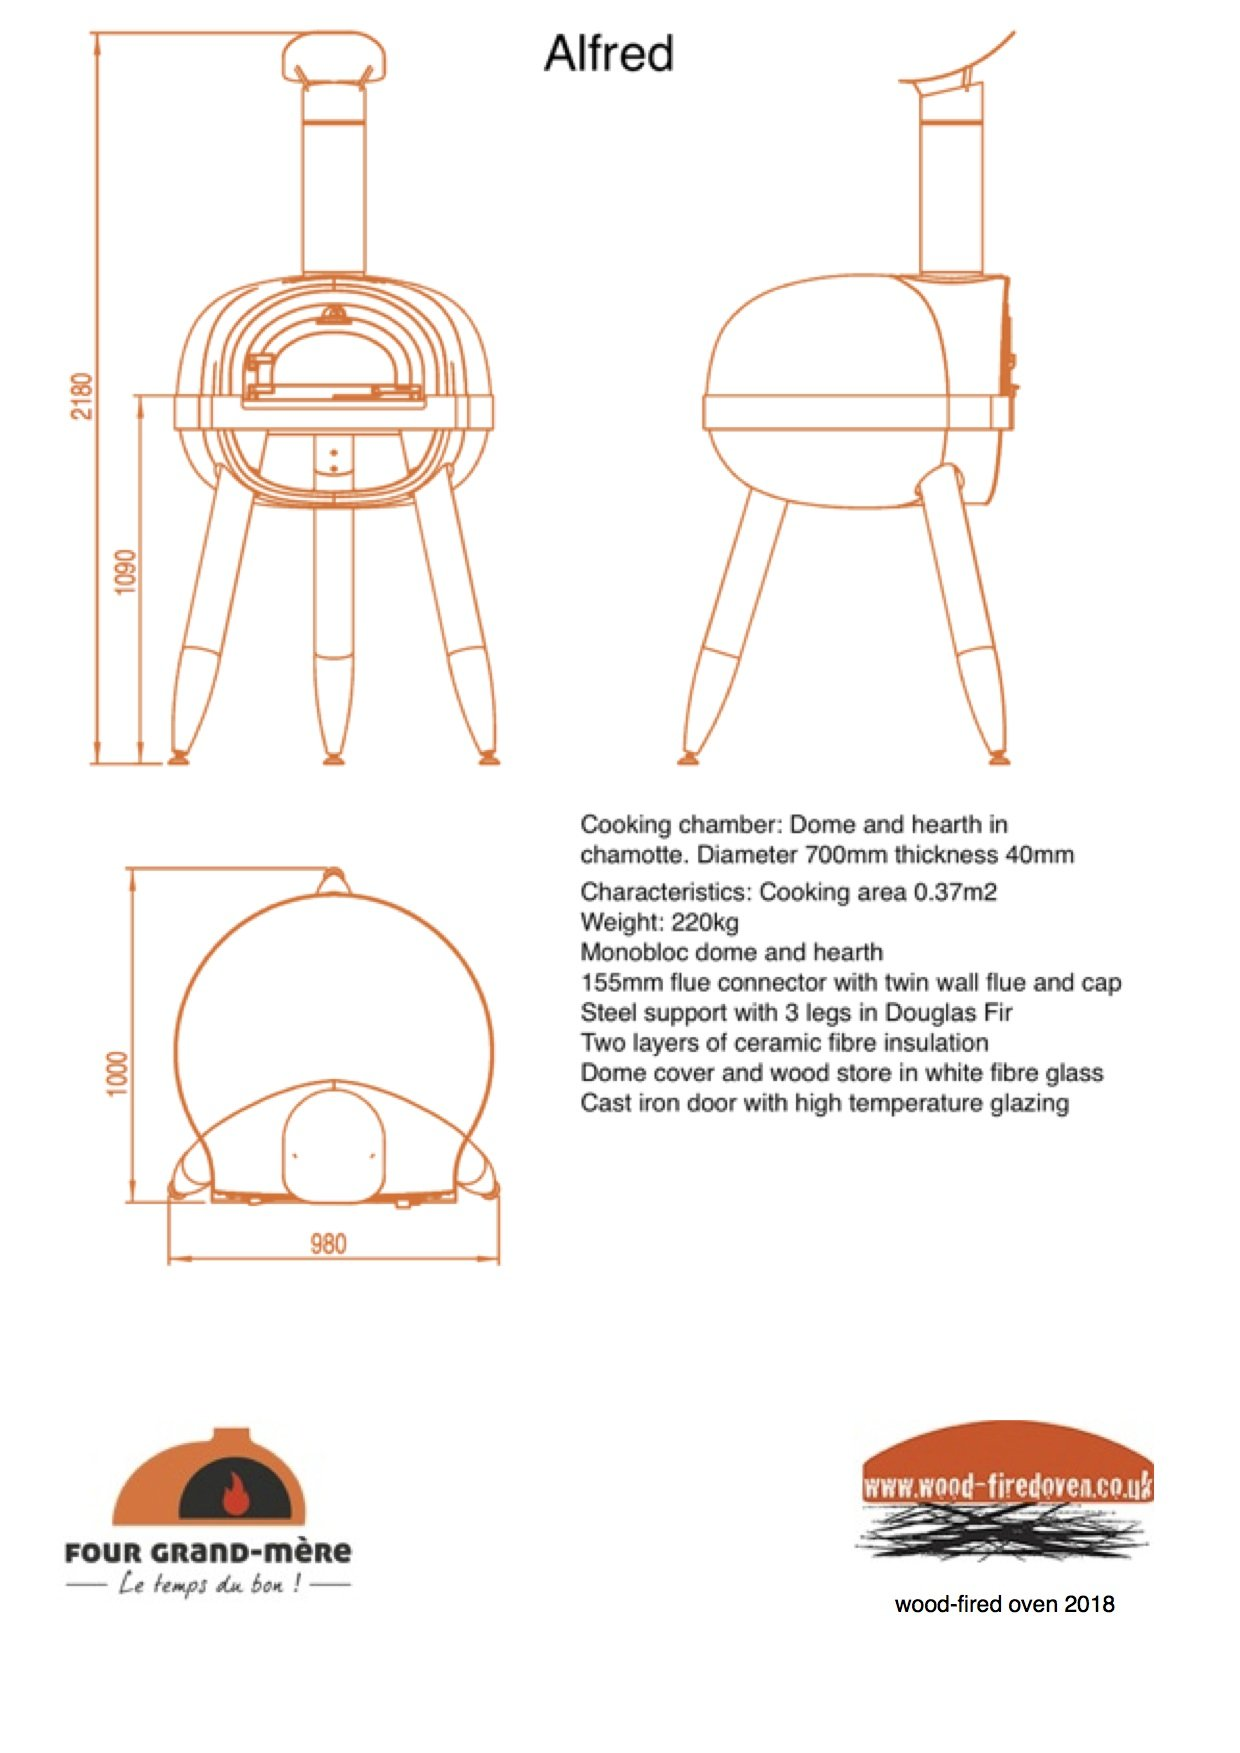 ALFRED, wood-fired oven, pizza oven, pizza oven kit,